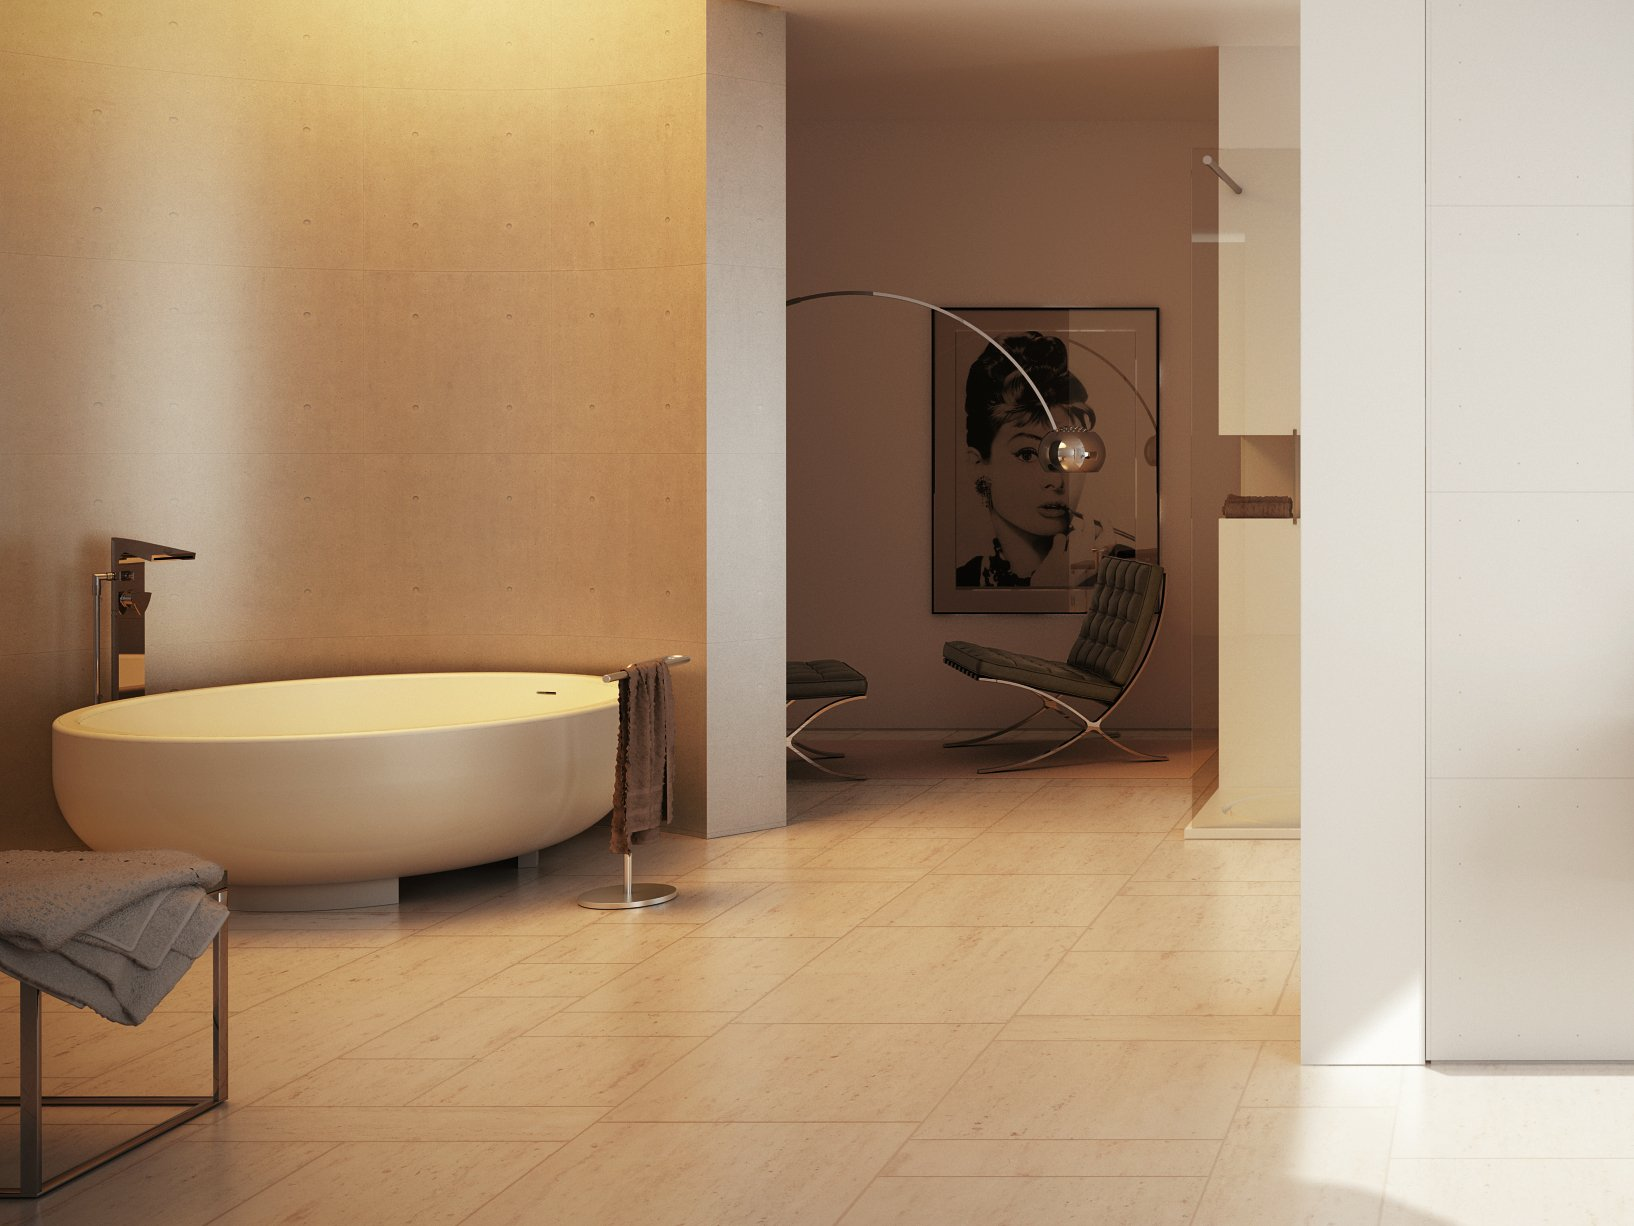 Vasca da bagno rotonda gold tub by dimasi bathroom by - Vasca da bagno rotonda ...